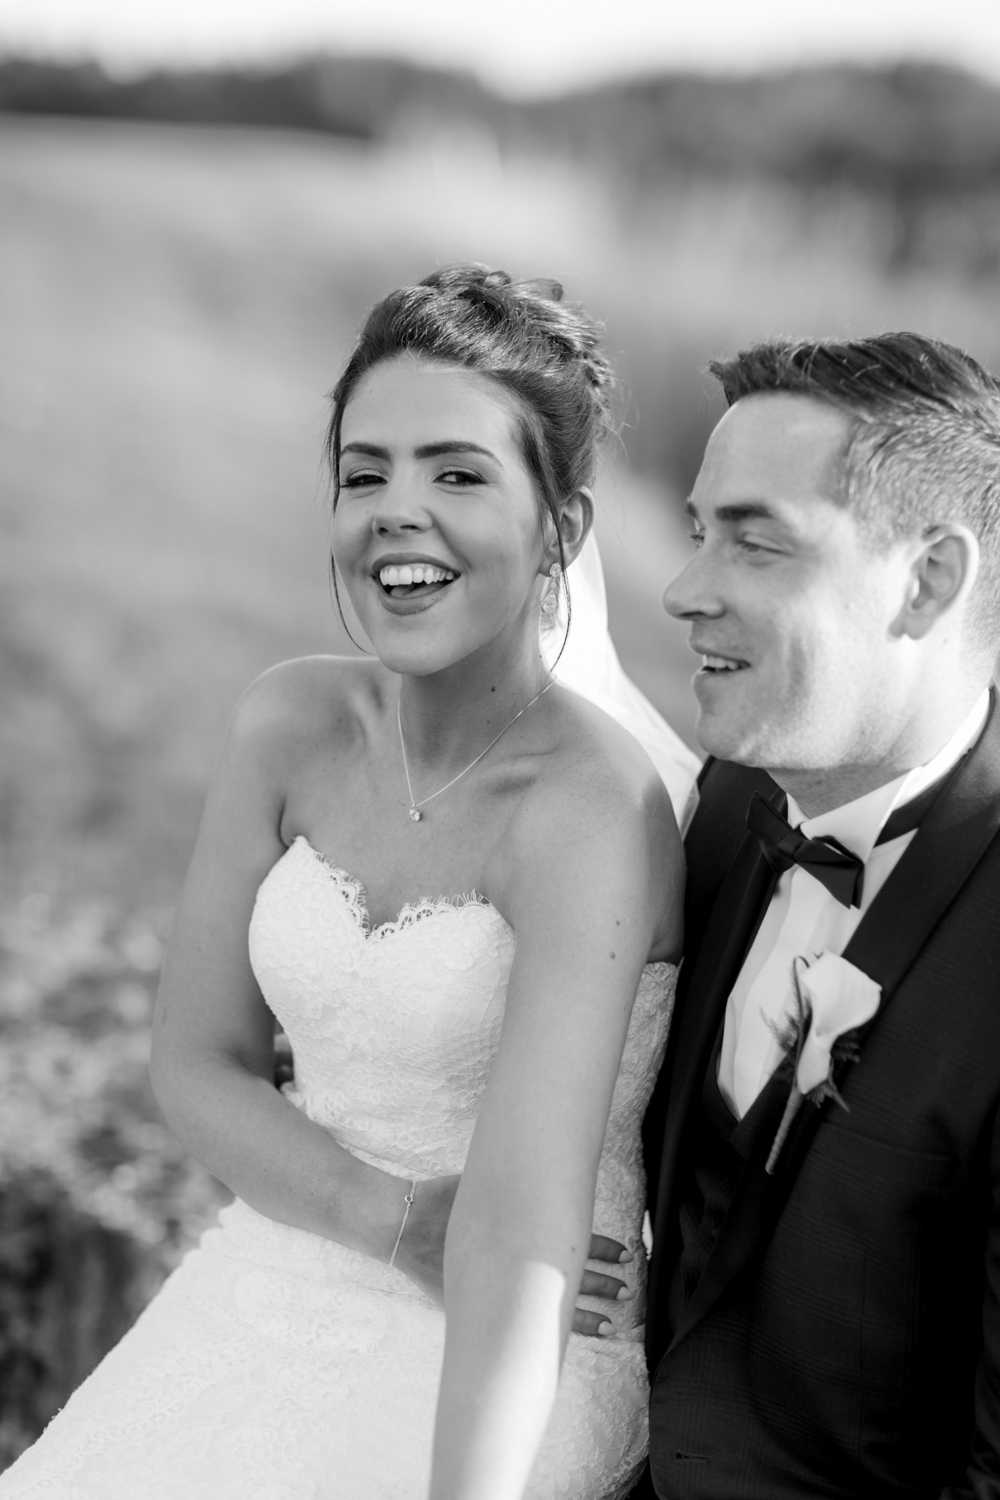 open shoulder wedding dress bride is laughing at the camera with a groom dressed in black tux at a wedding in ireland